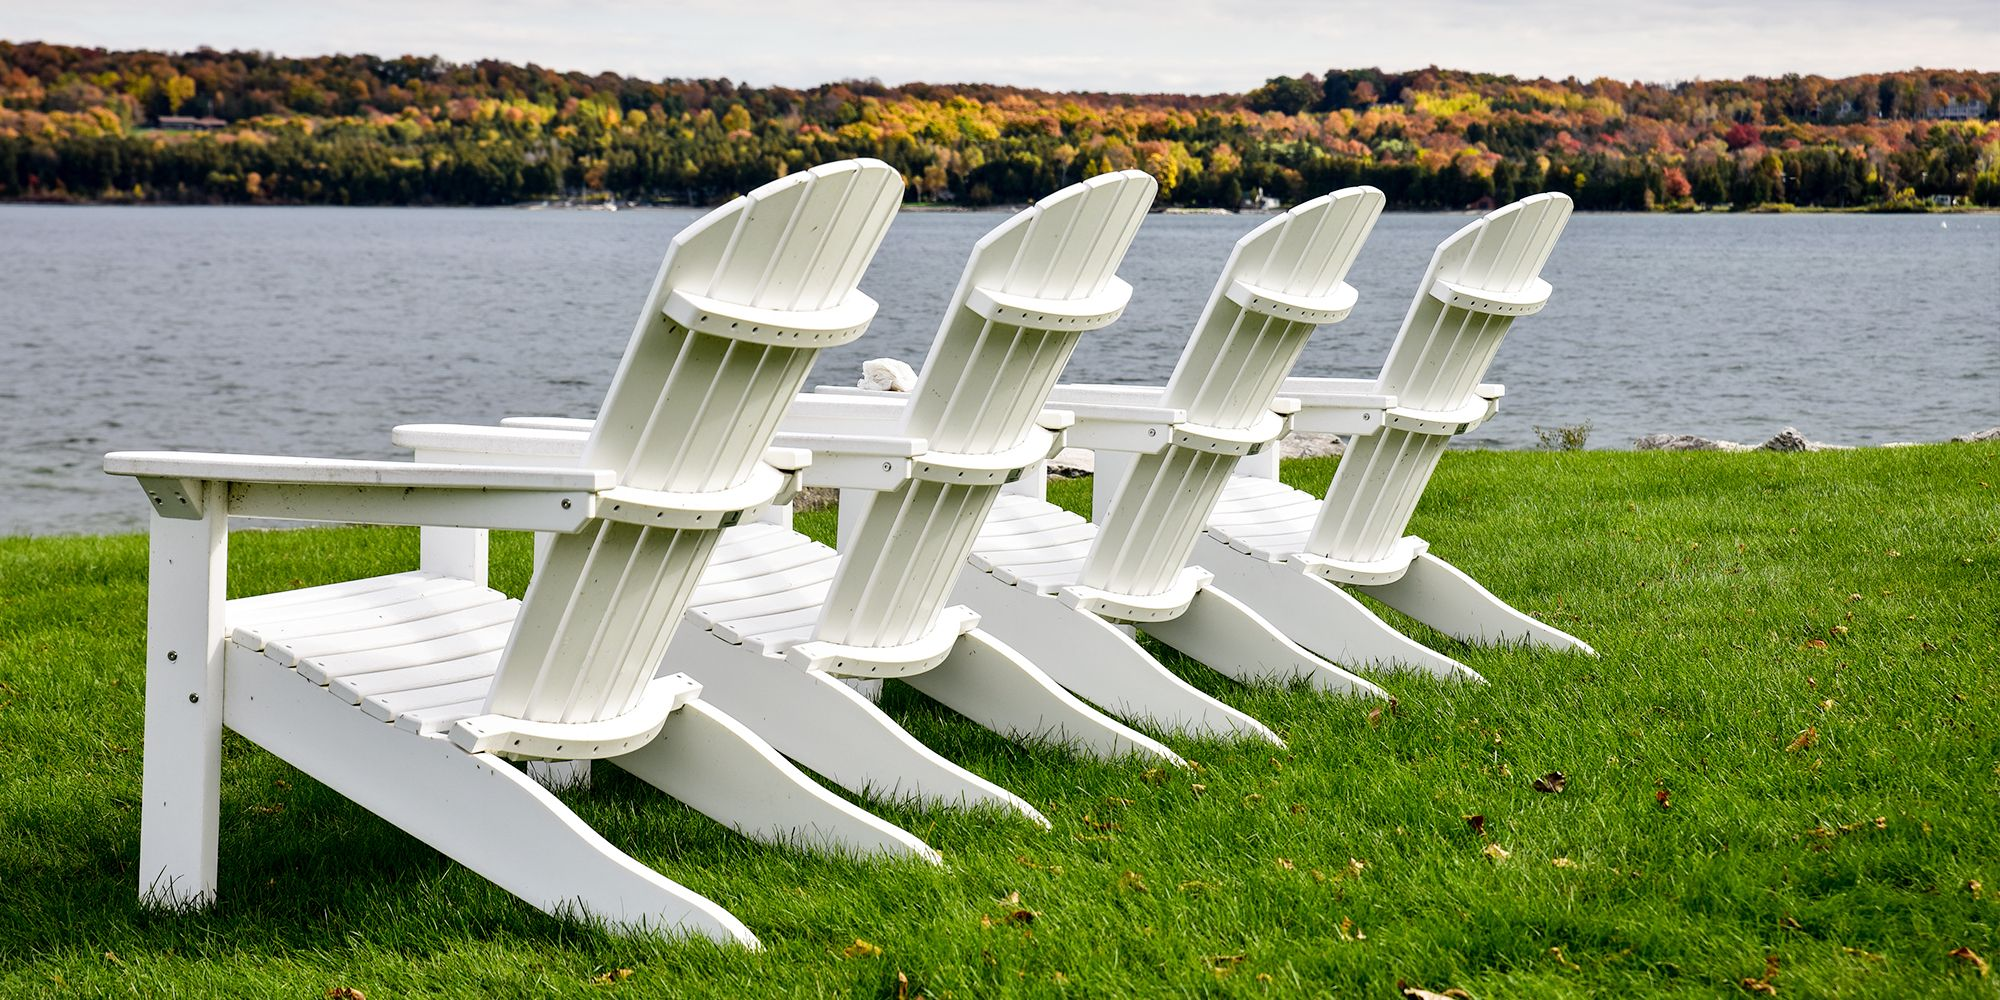 Weatherproof Adirondack Chairs 12 Best Adirondack Chairs For 2019 Adirondack Chair Sets For Yards